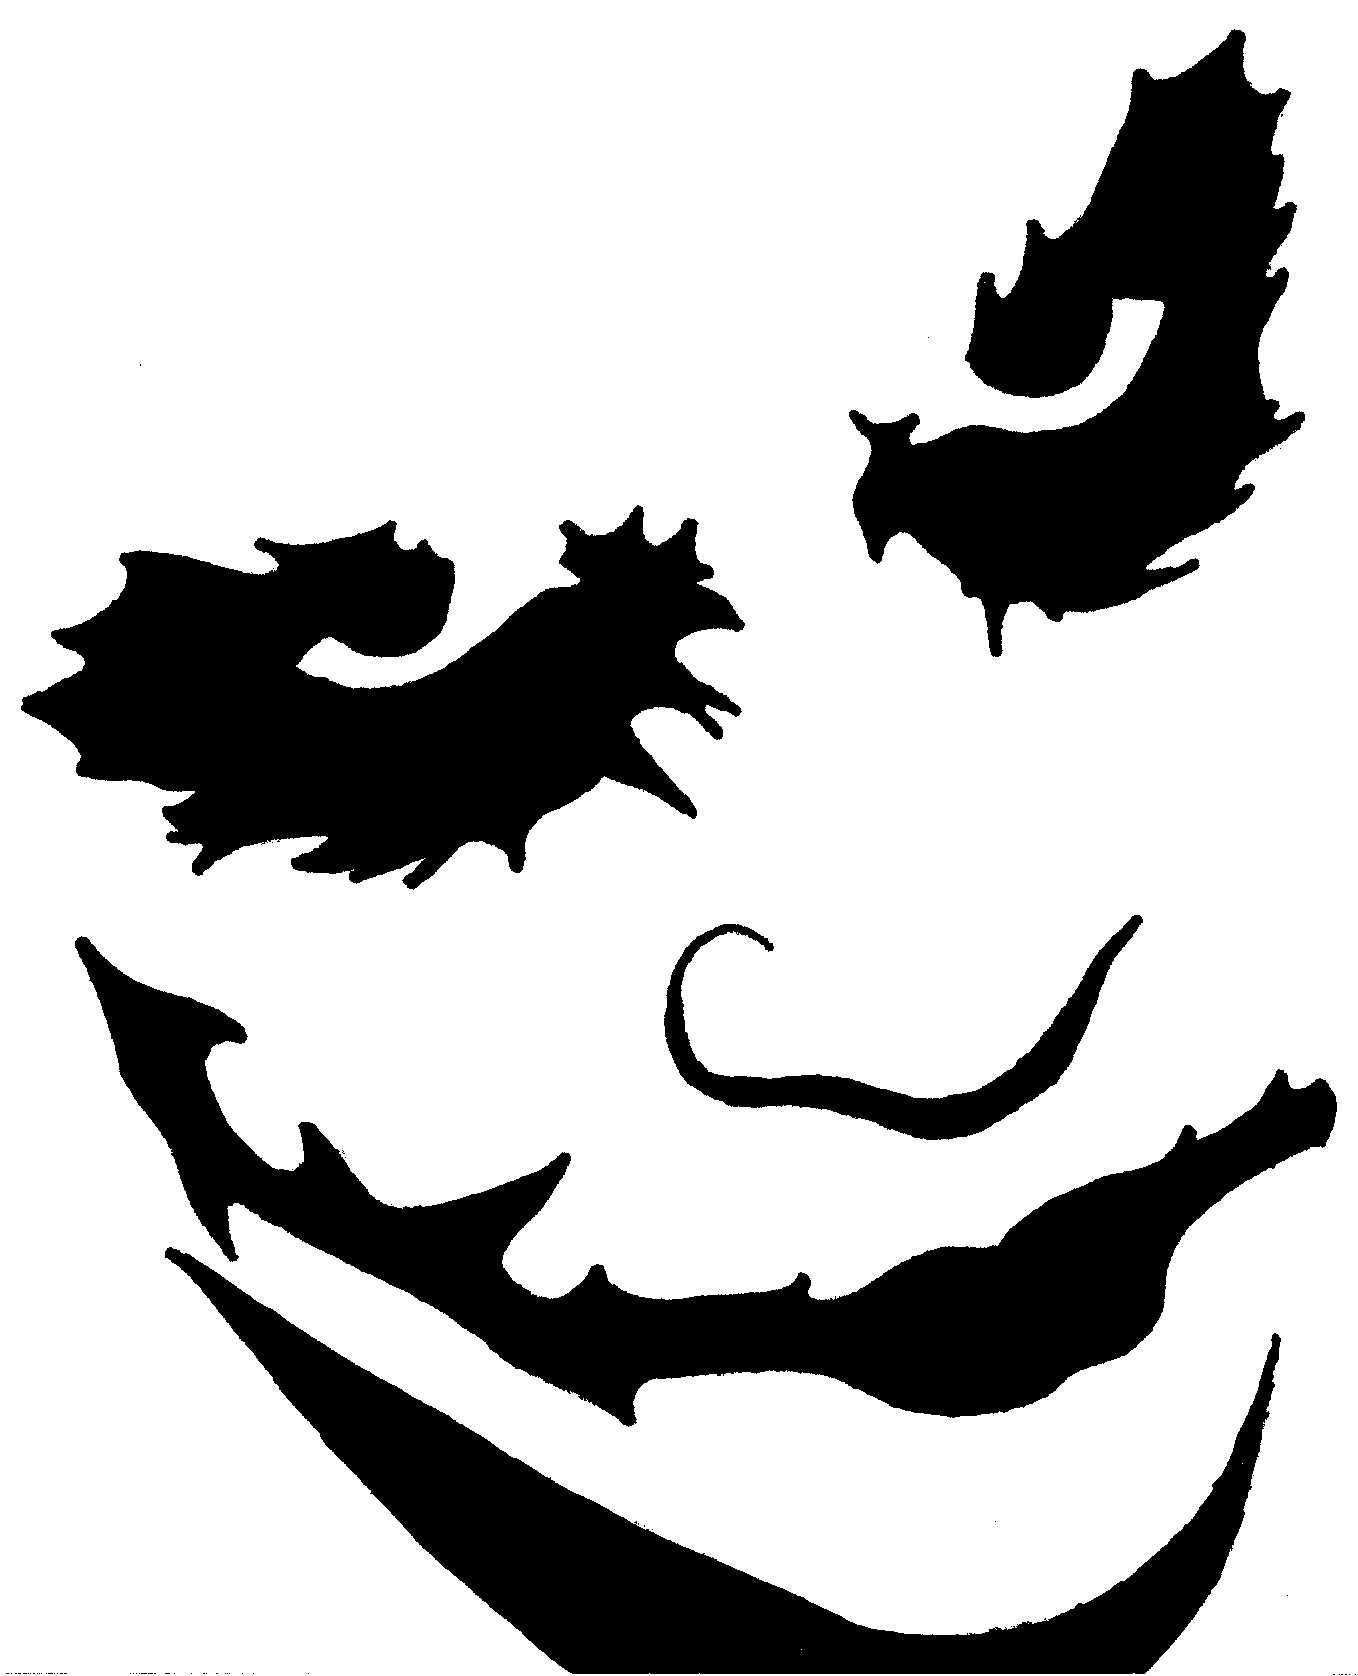 groovy little heath ledger joker pumpkin stencil | Ideas for the ...